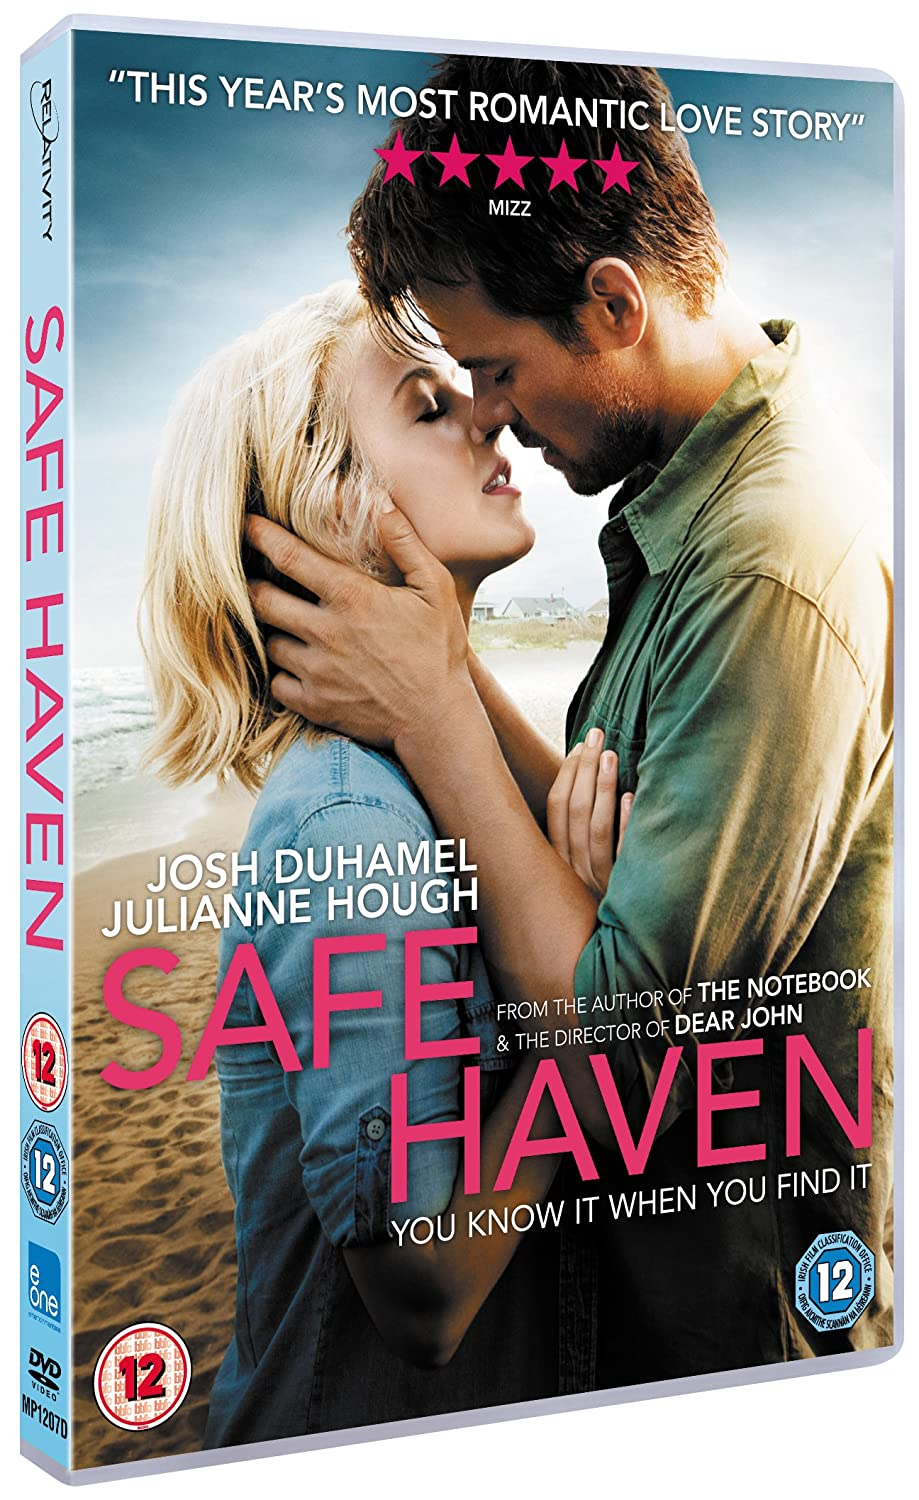 safe haven dvd amazon co uk josh duhamel julianne hough safe haven dvd amazon co uk josh duhamel julianne hough lasse hallstroumlm dvd blu ray